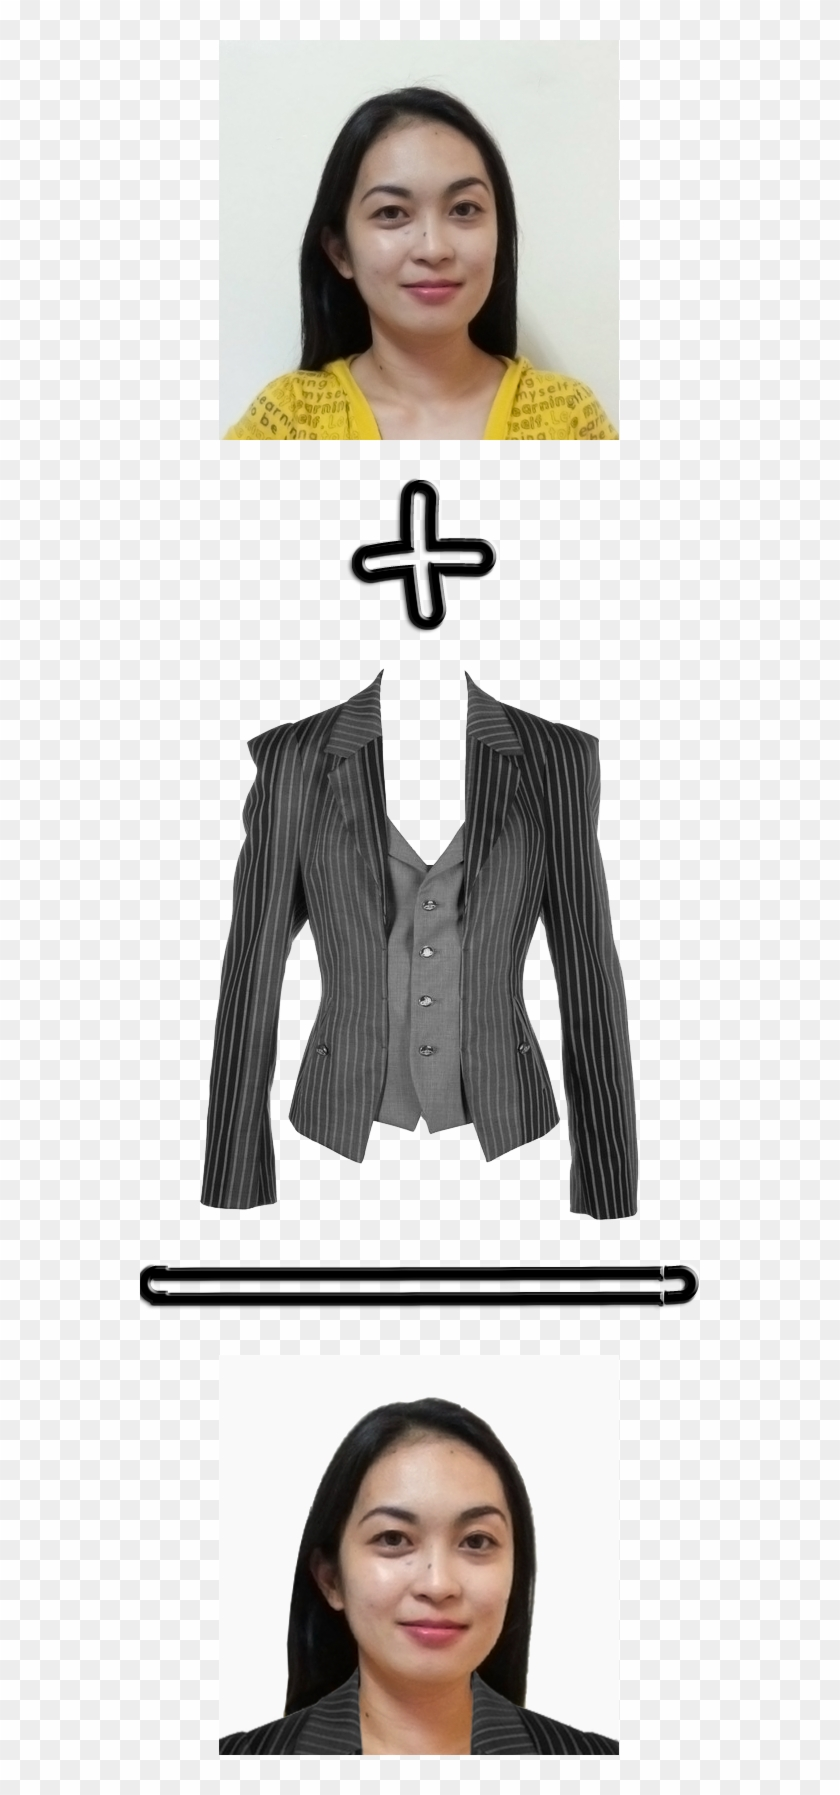 Makeshift Id - Photoshop Formal Attire For Women Png Clipart@pikpng.com